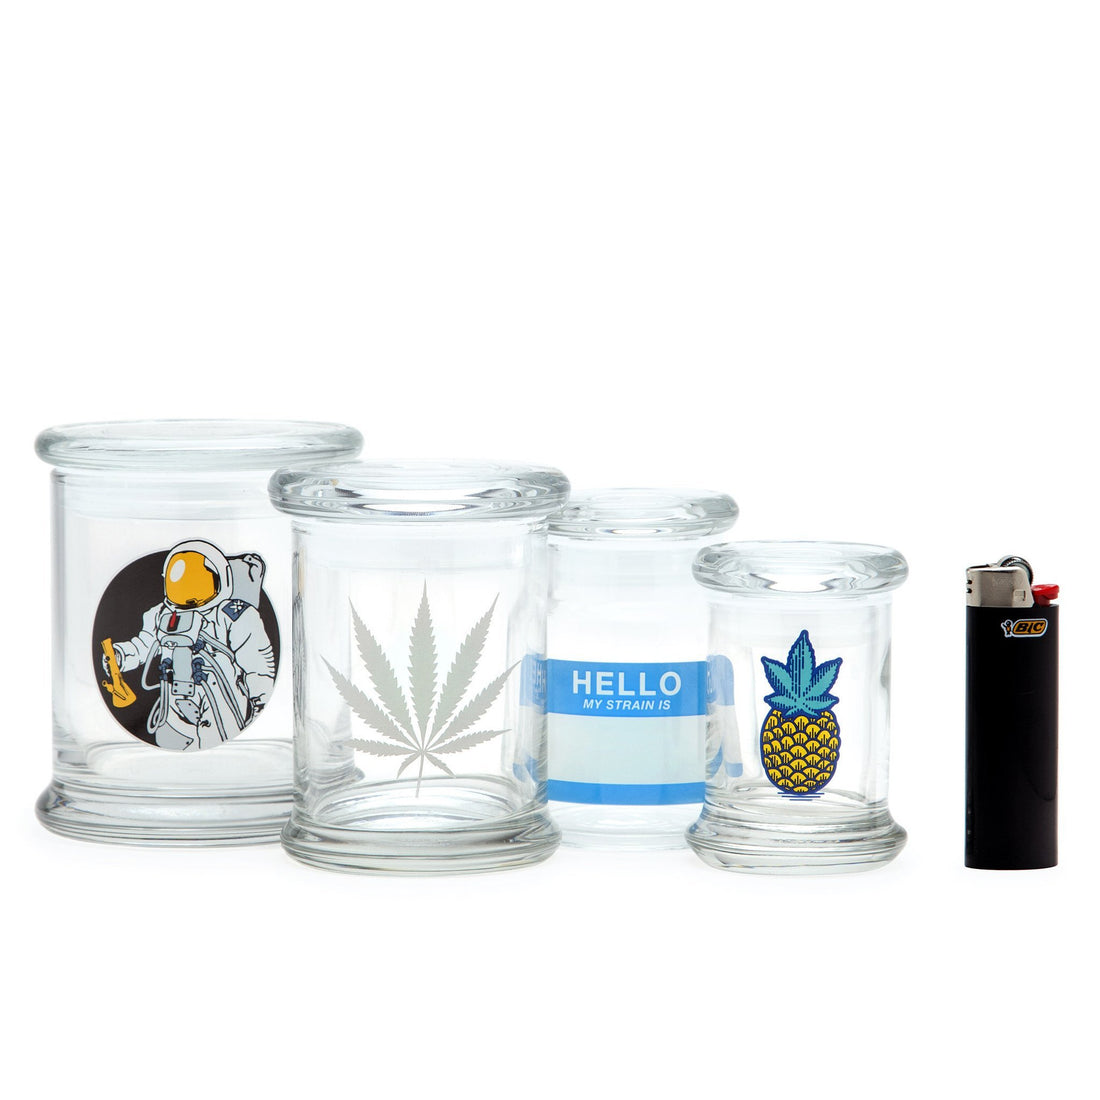 X-Small Pop-Top - Infinite Loop - 420 Science - The most trusted online smoke shop.